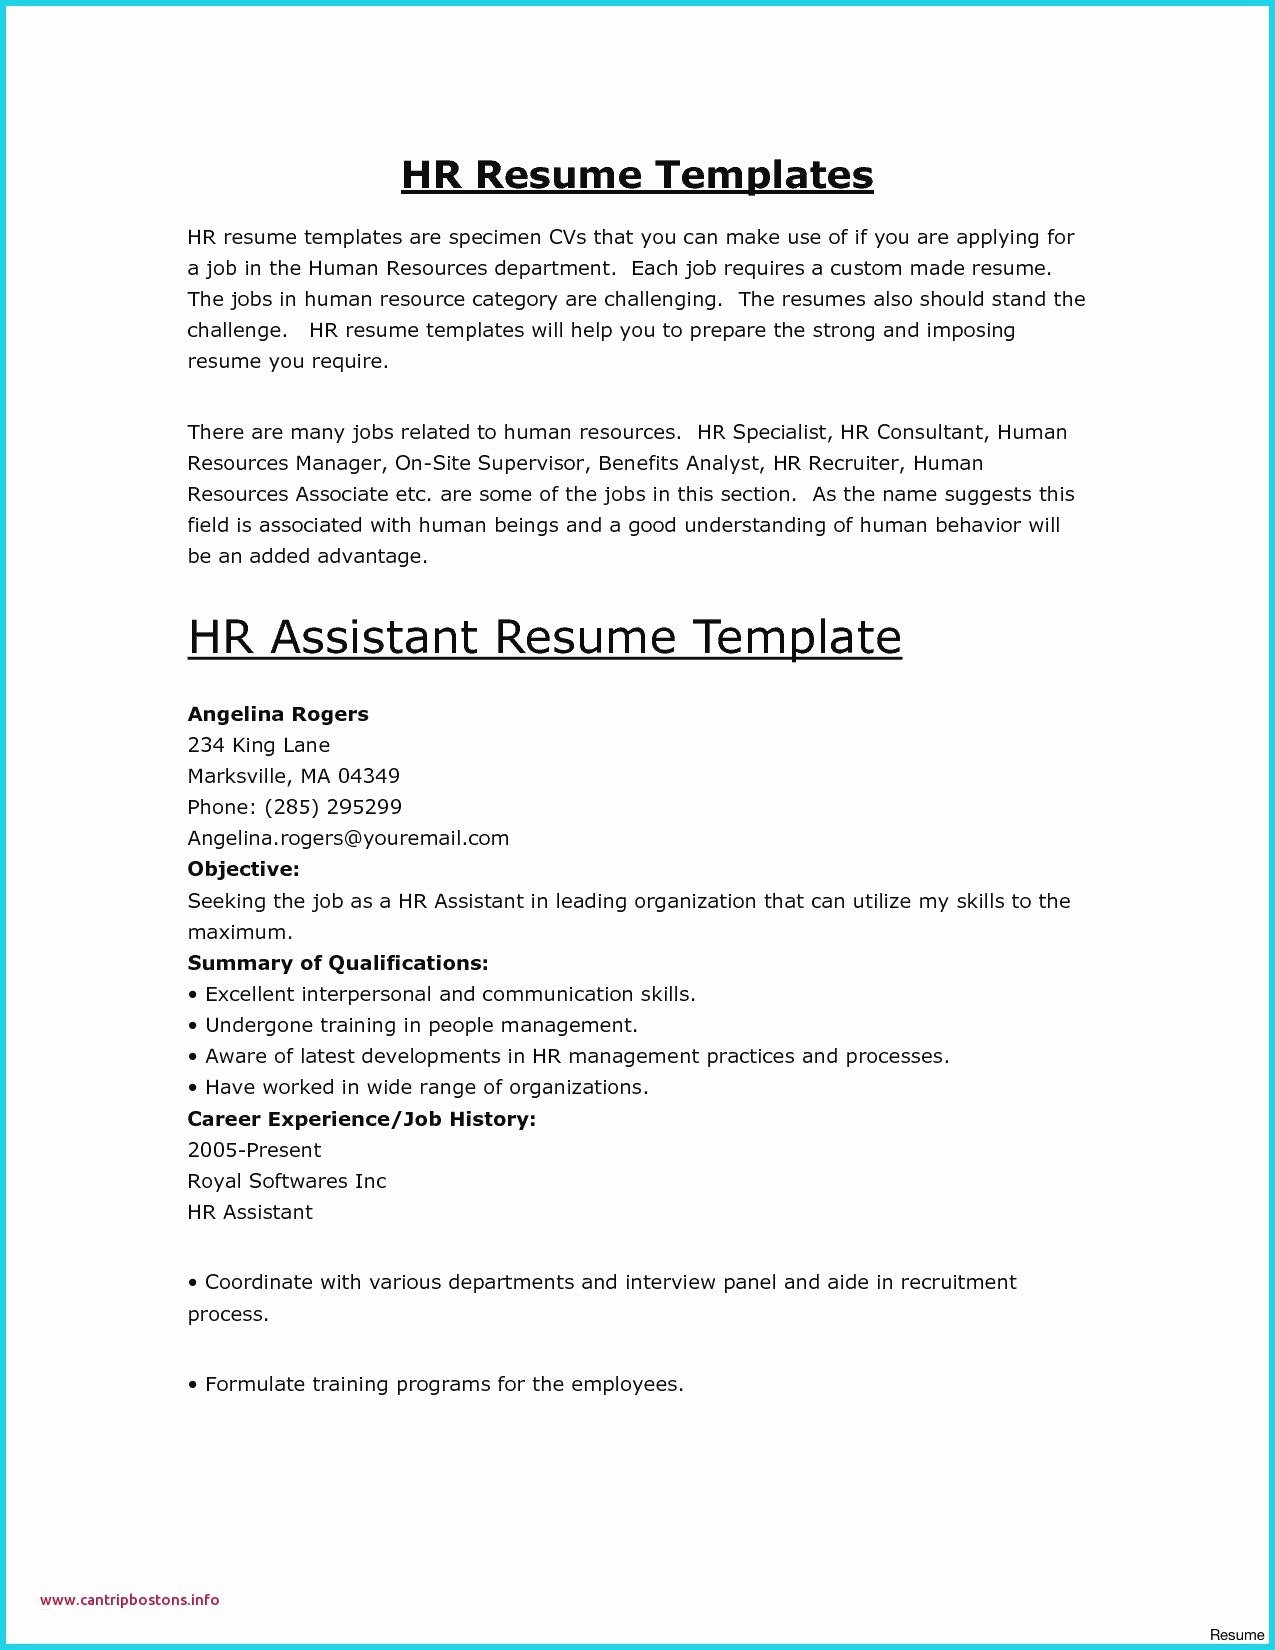 Letter Of Employment Template Word - Microsoft Word Templates Resume Elegant Awesome Examples Resumes